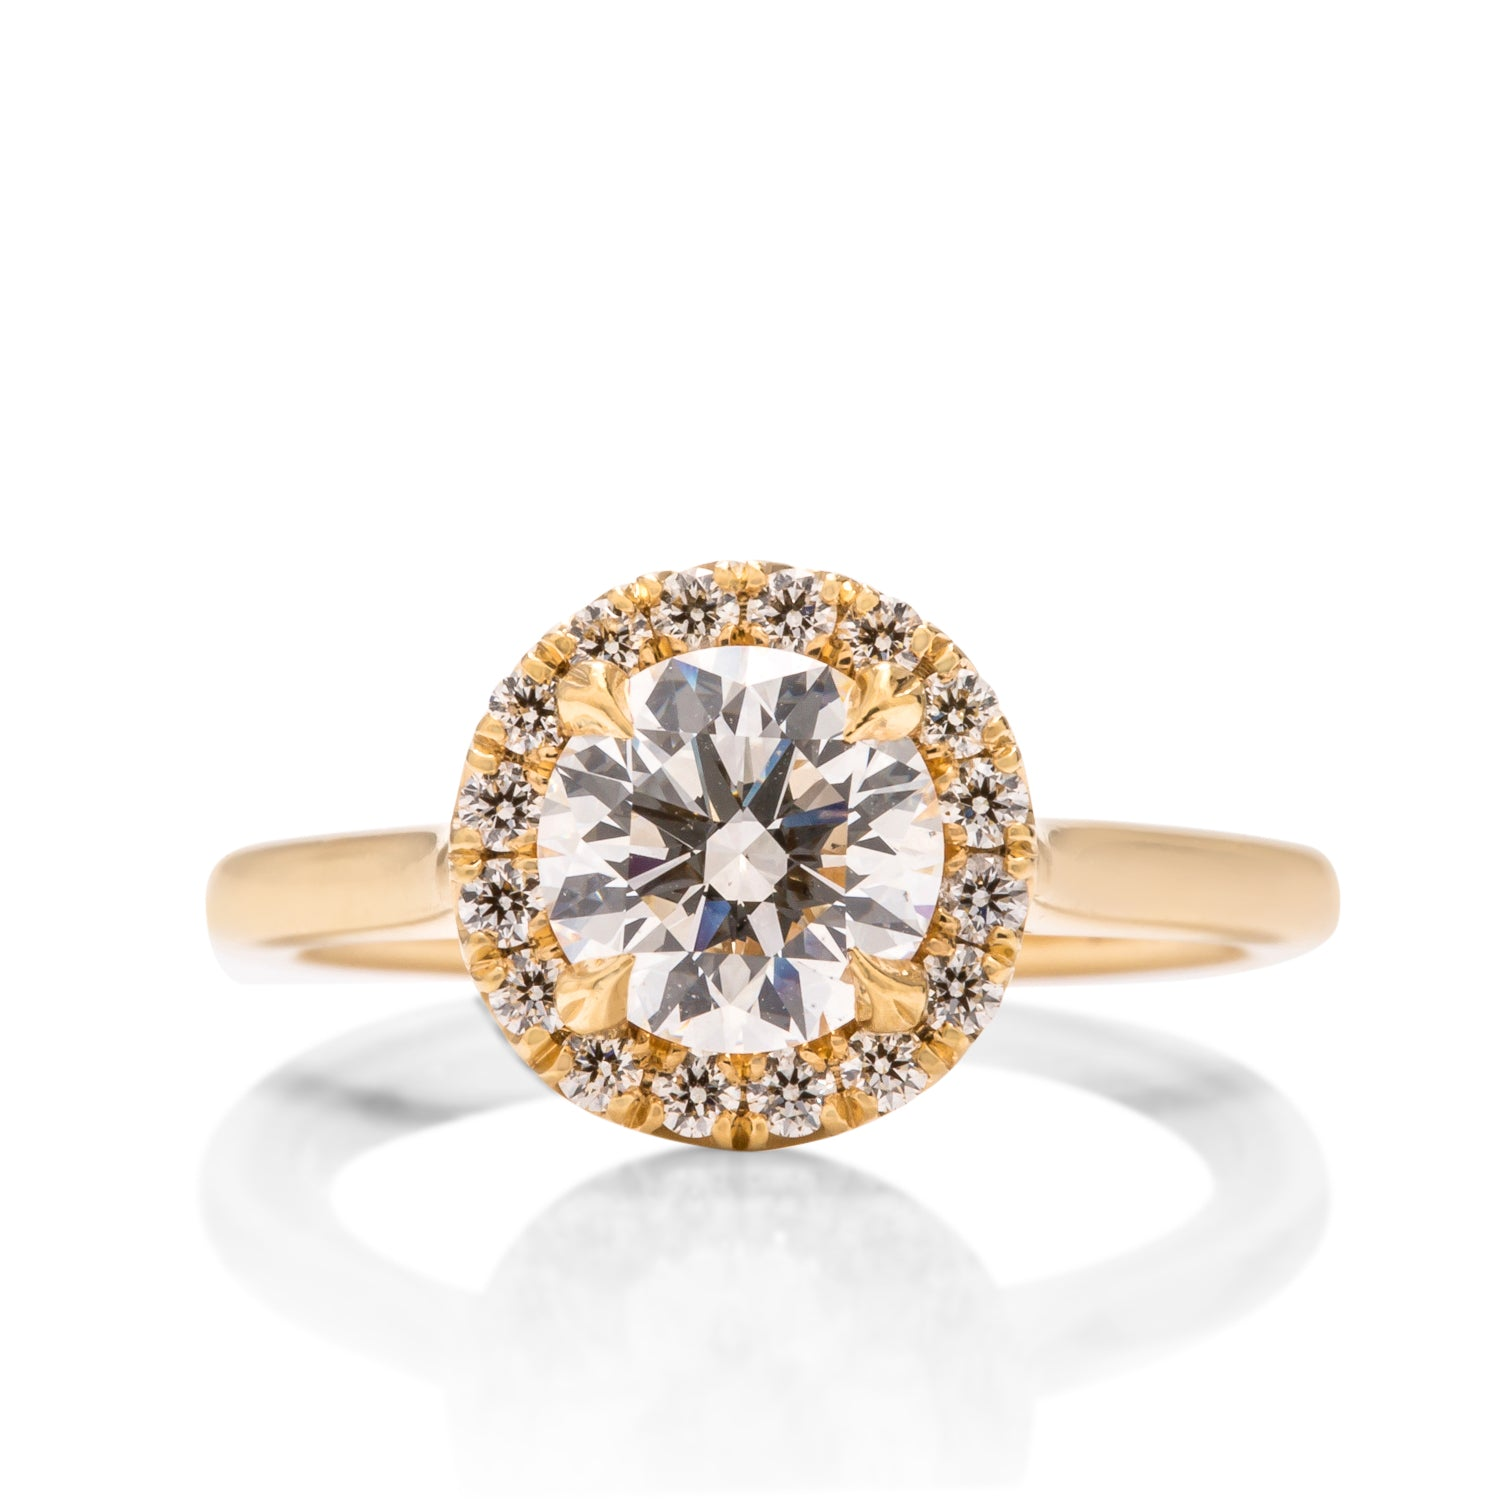 Hearts On Fire Round Halo Diamond Engagement Ring - Charles Koll Jewellers